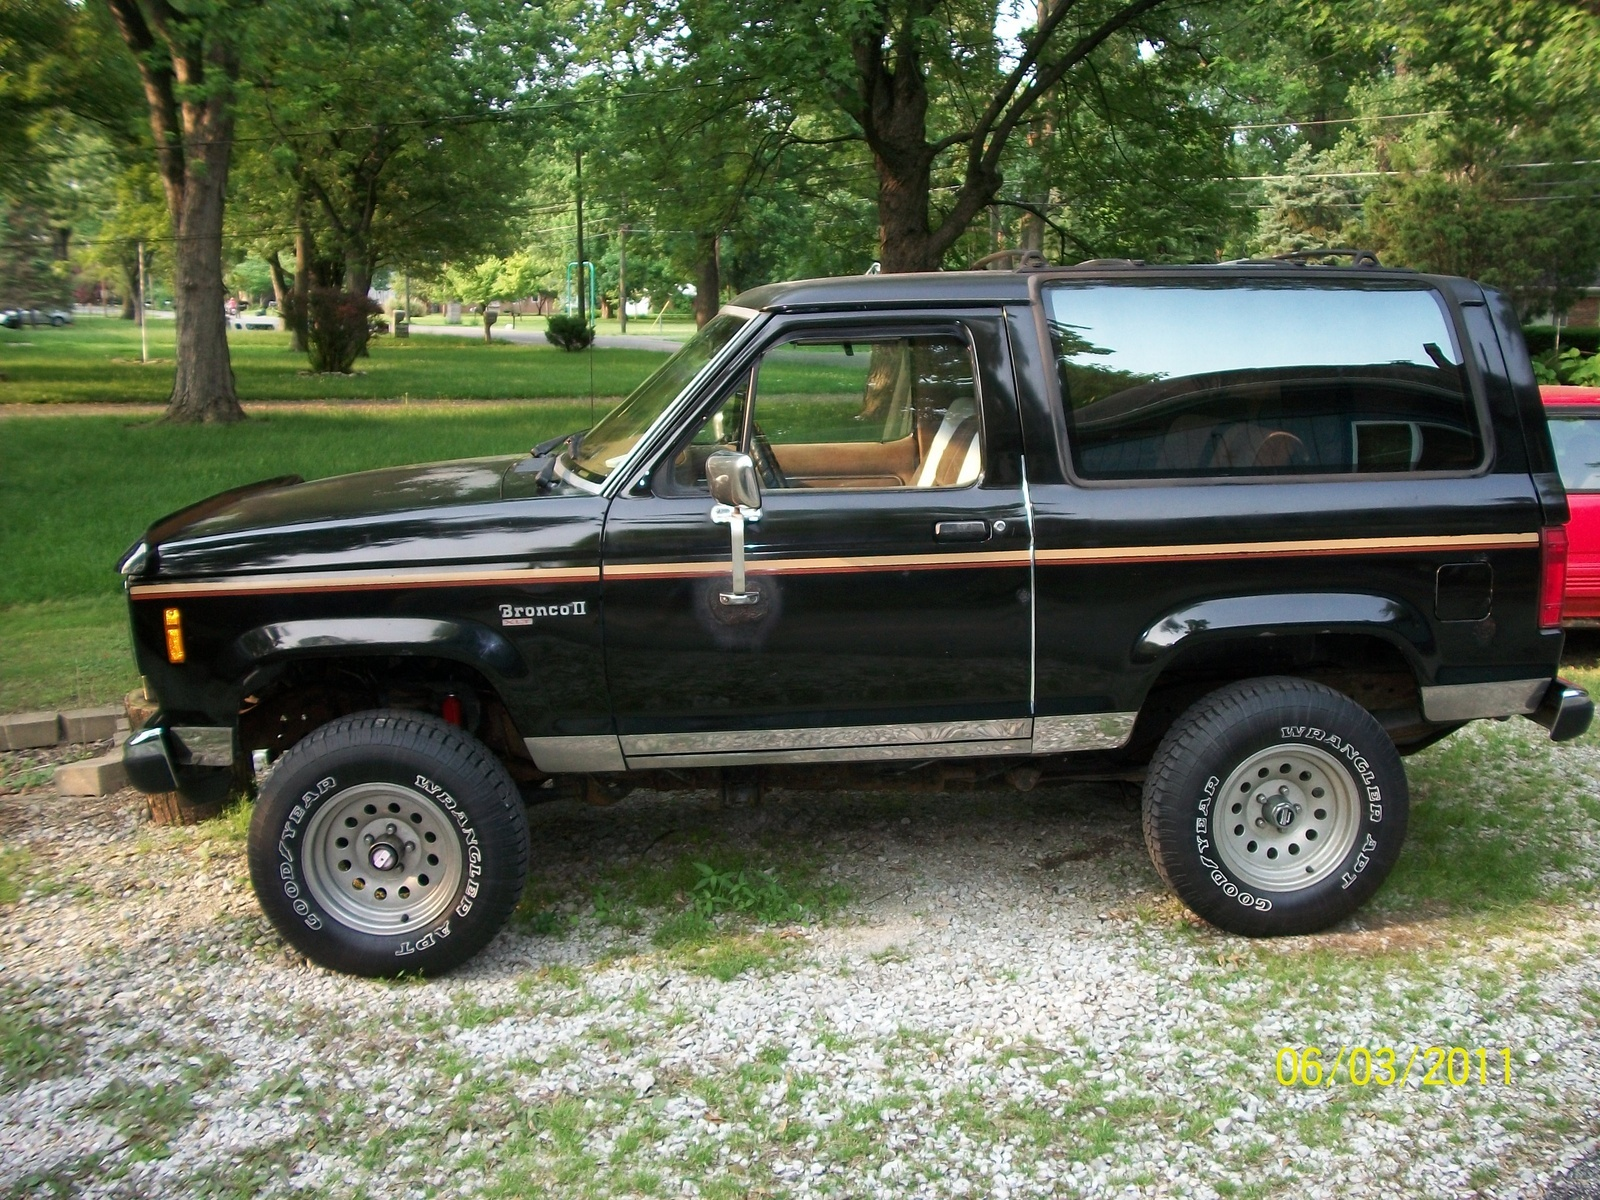 Ford Bronco Ii #14